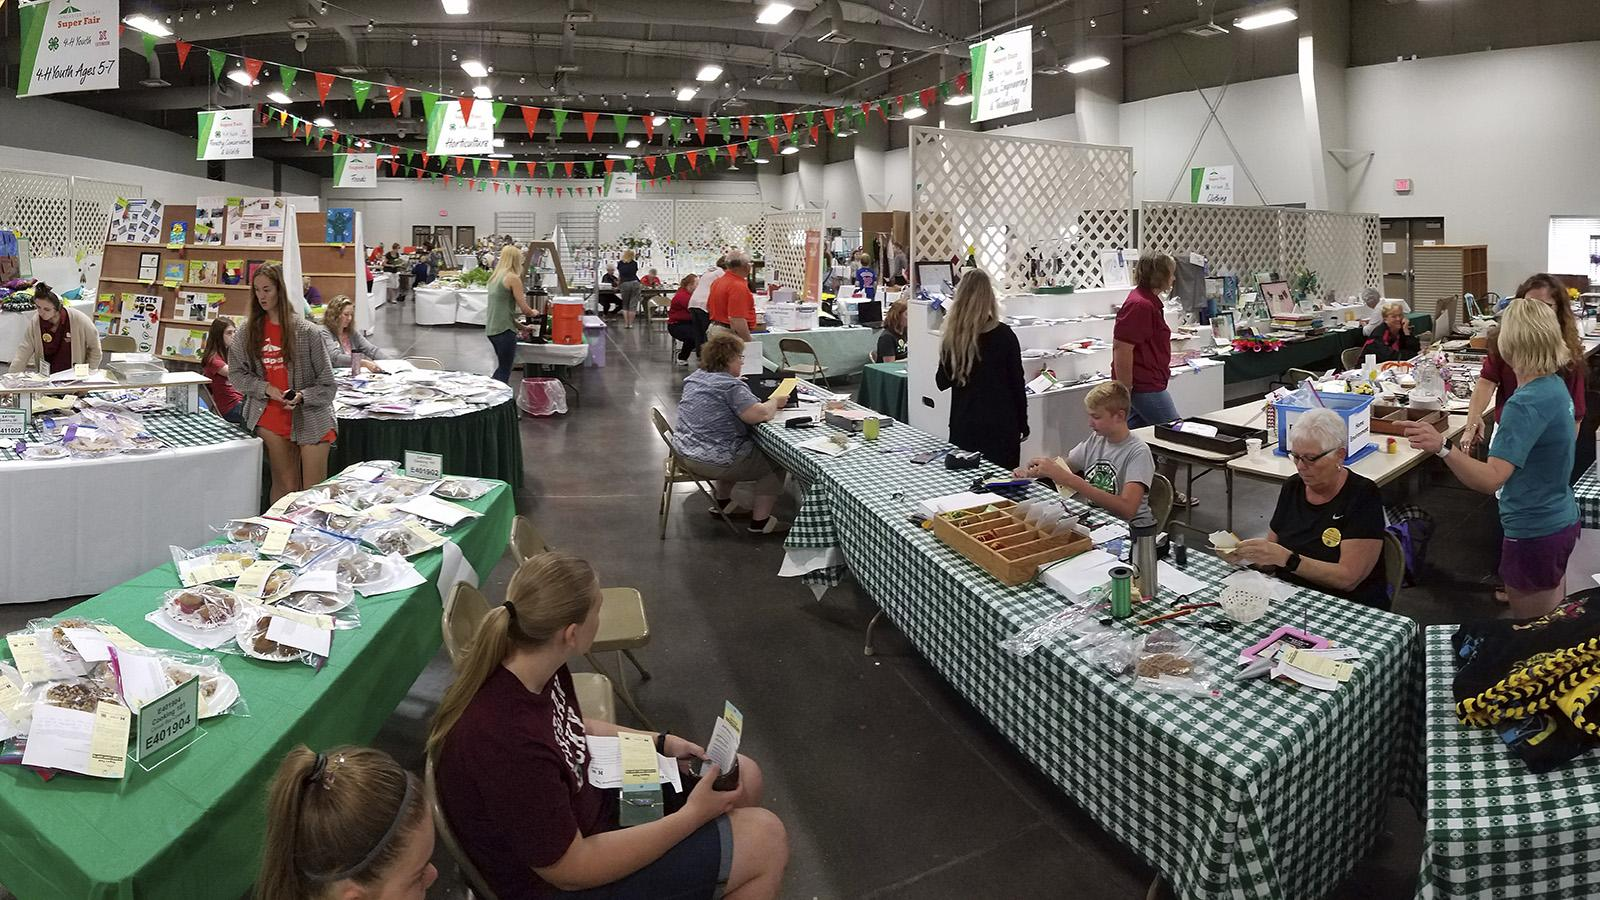 Volunteers and youth busy with exhibits at fair